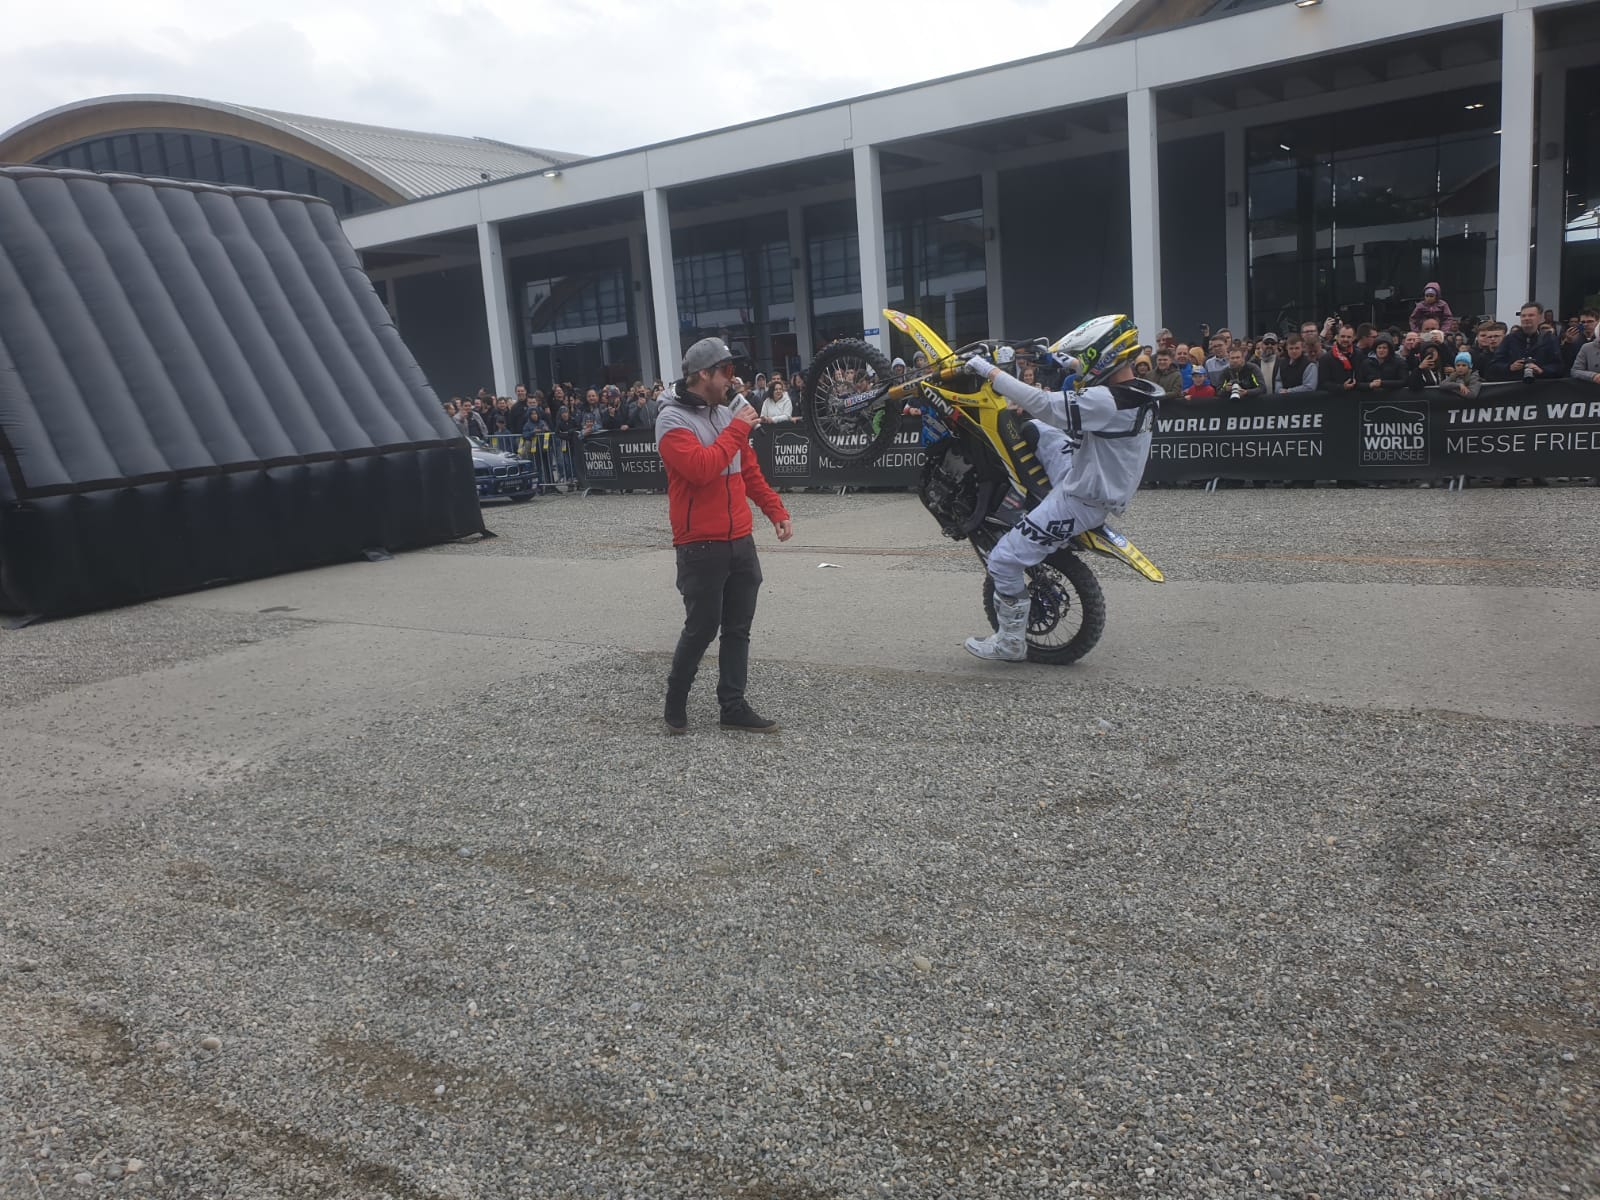 3. – 5. Mai 2019 Tuning World Bodensee FMX Shows